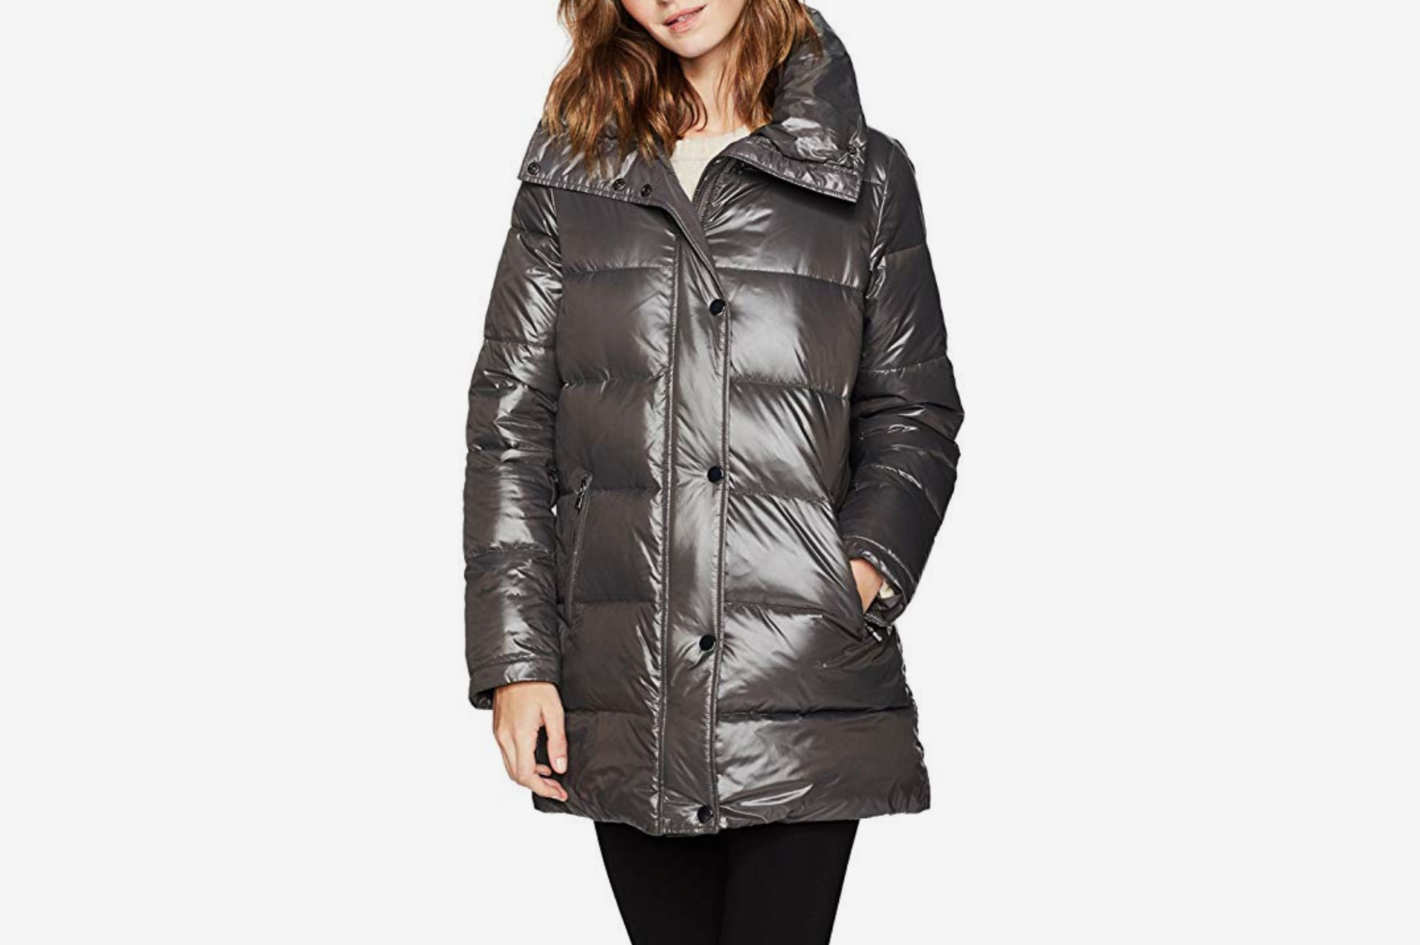 beb1e4238fb Haven Outerwear Women's Mid-Length Quilted Puffer Coat